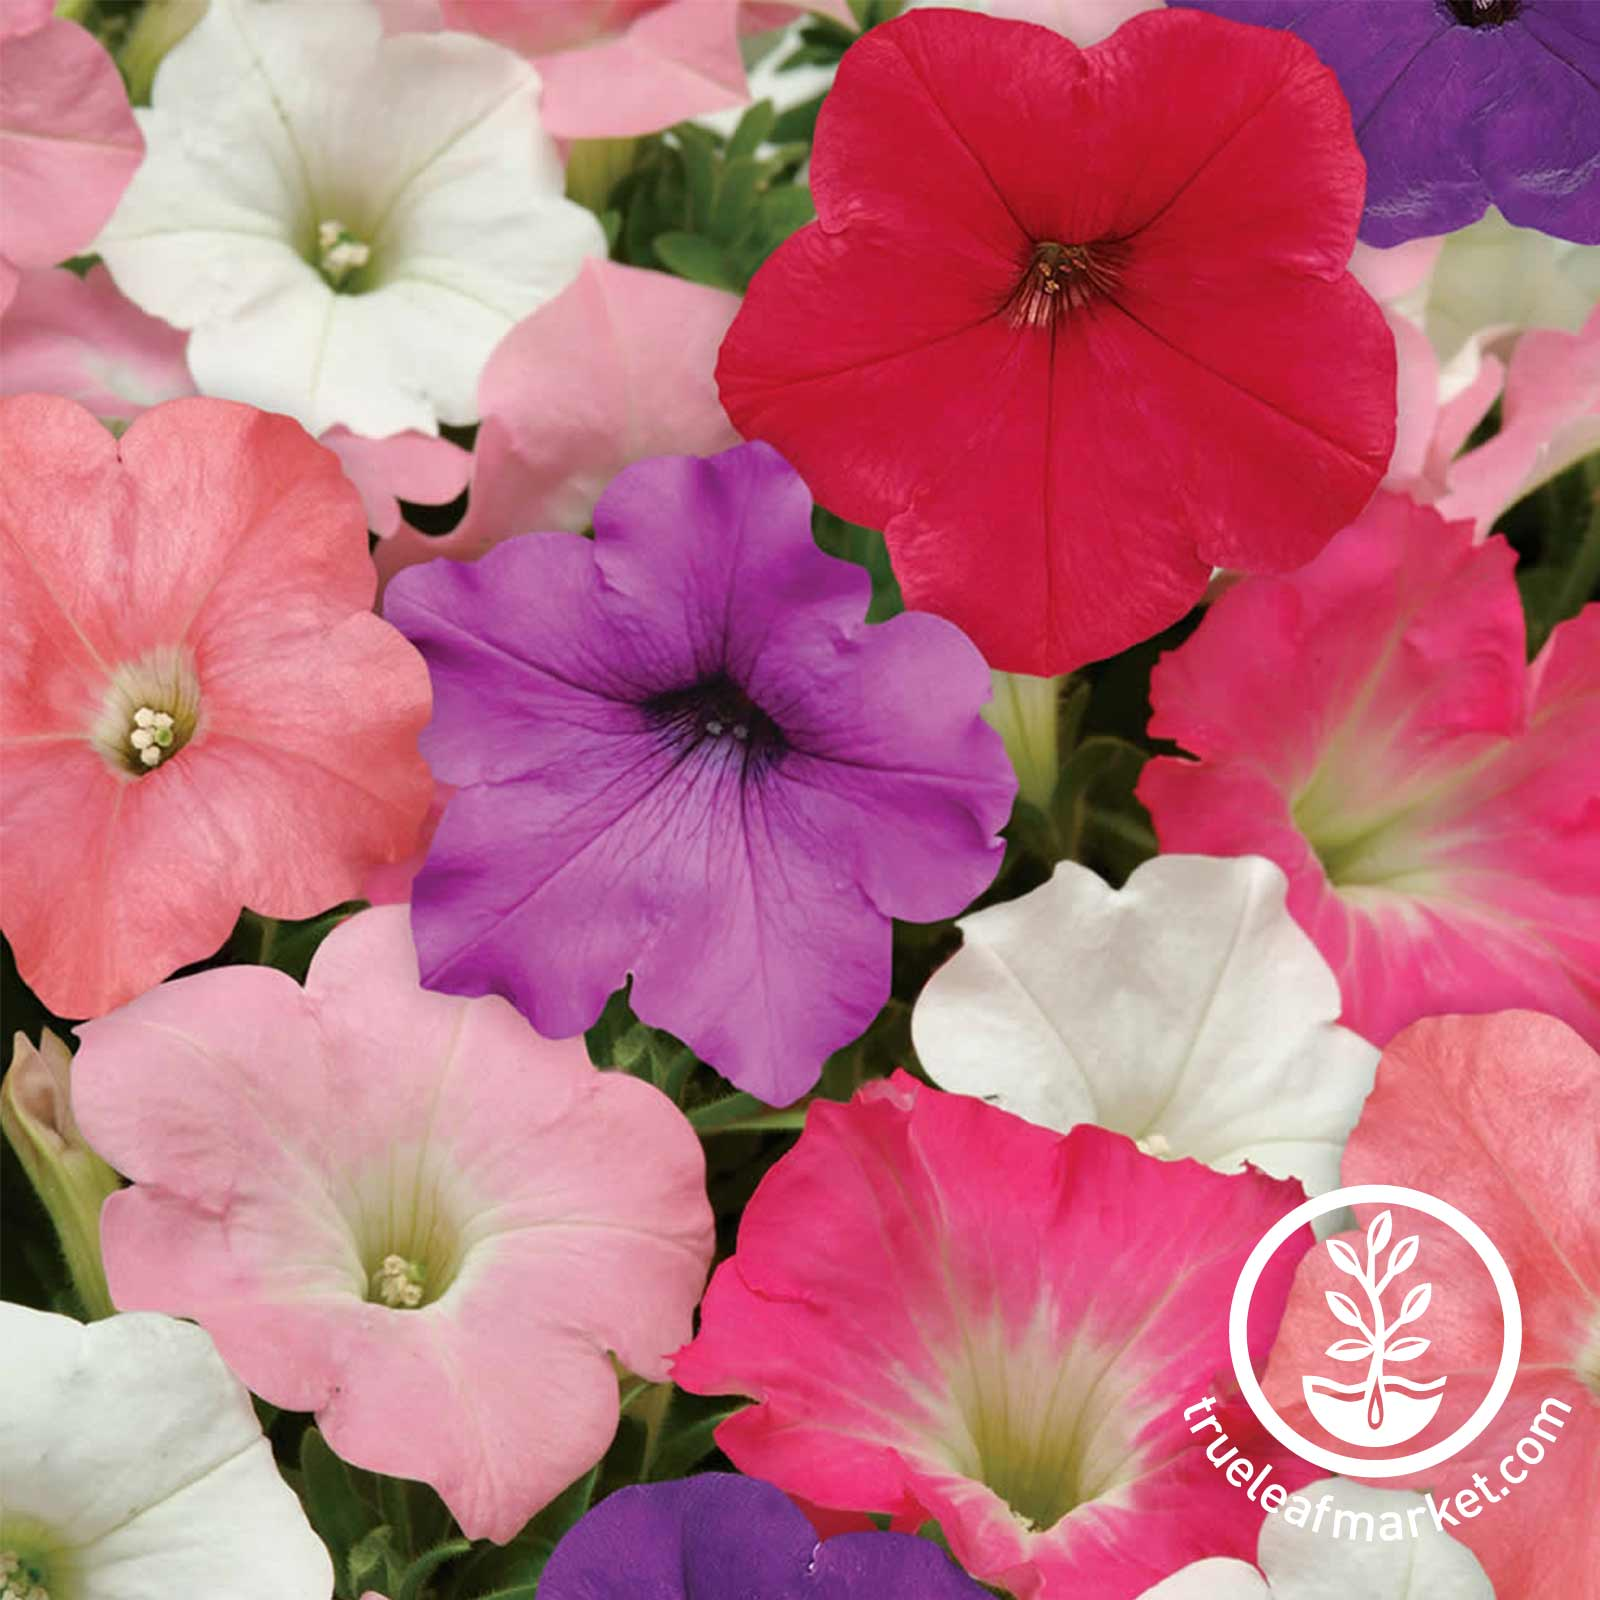 Petunia - Easy Wave Series (pelleted) - Formula Mix